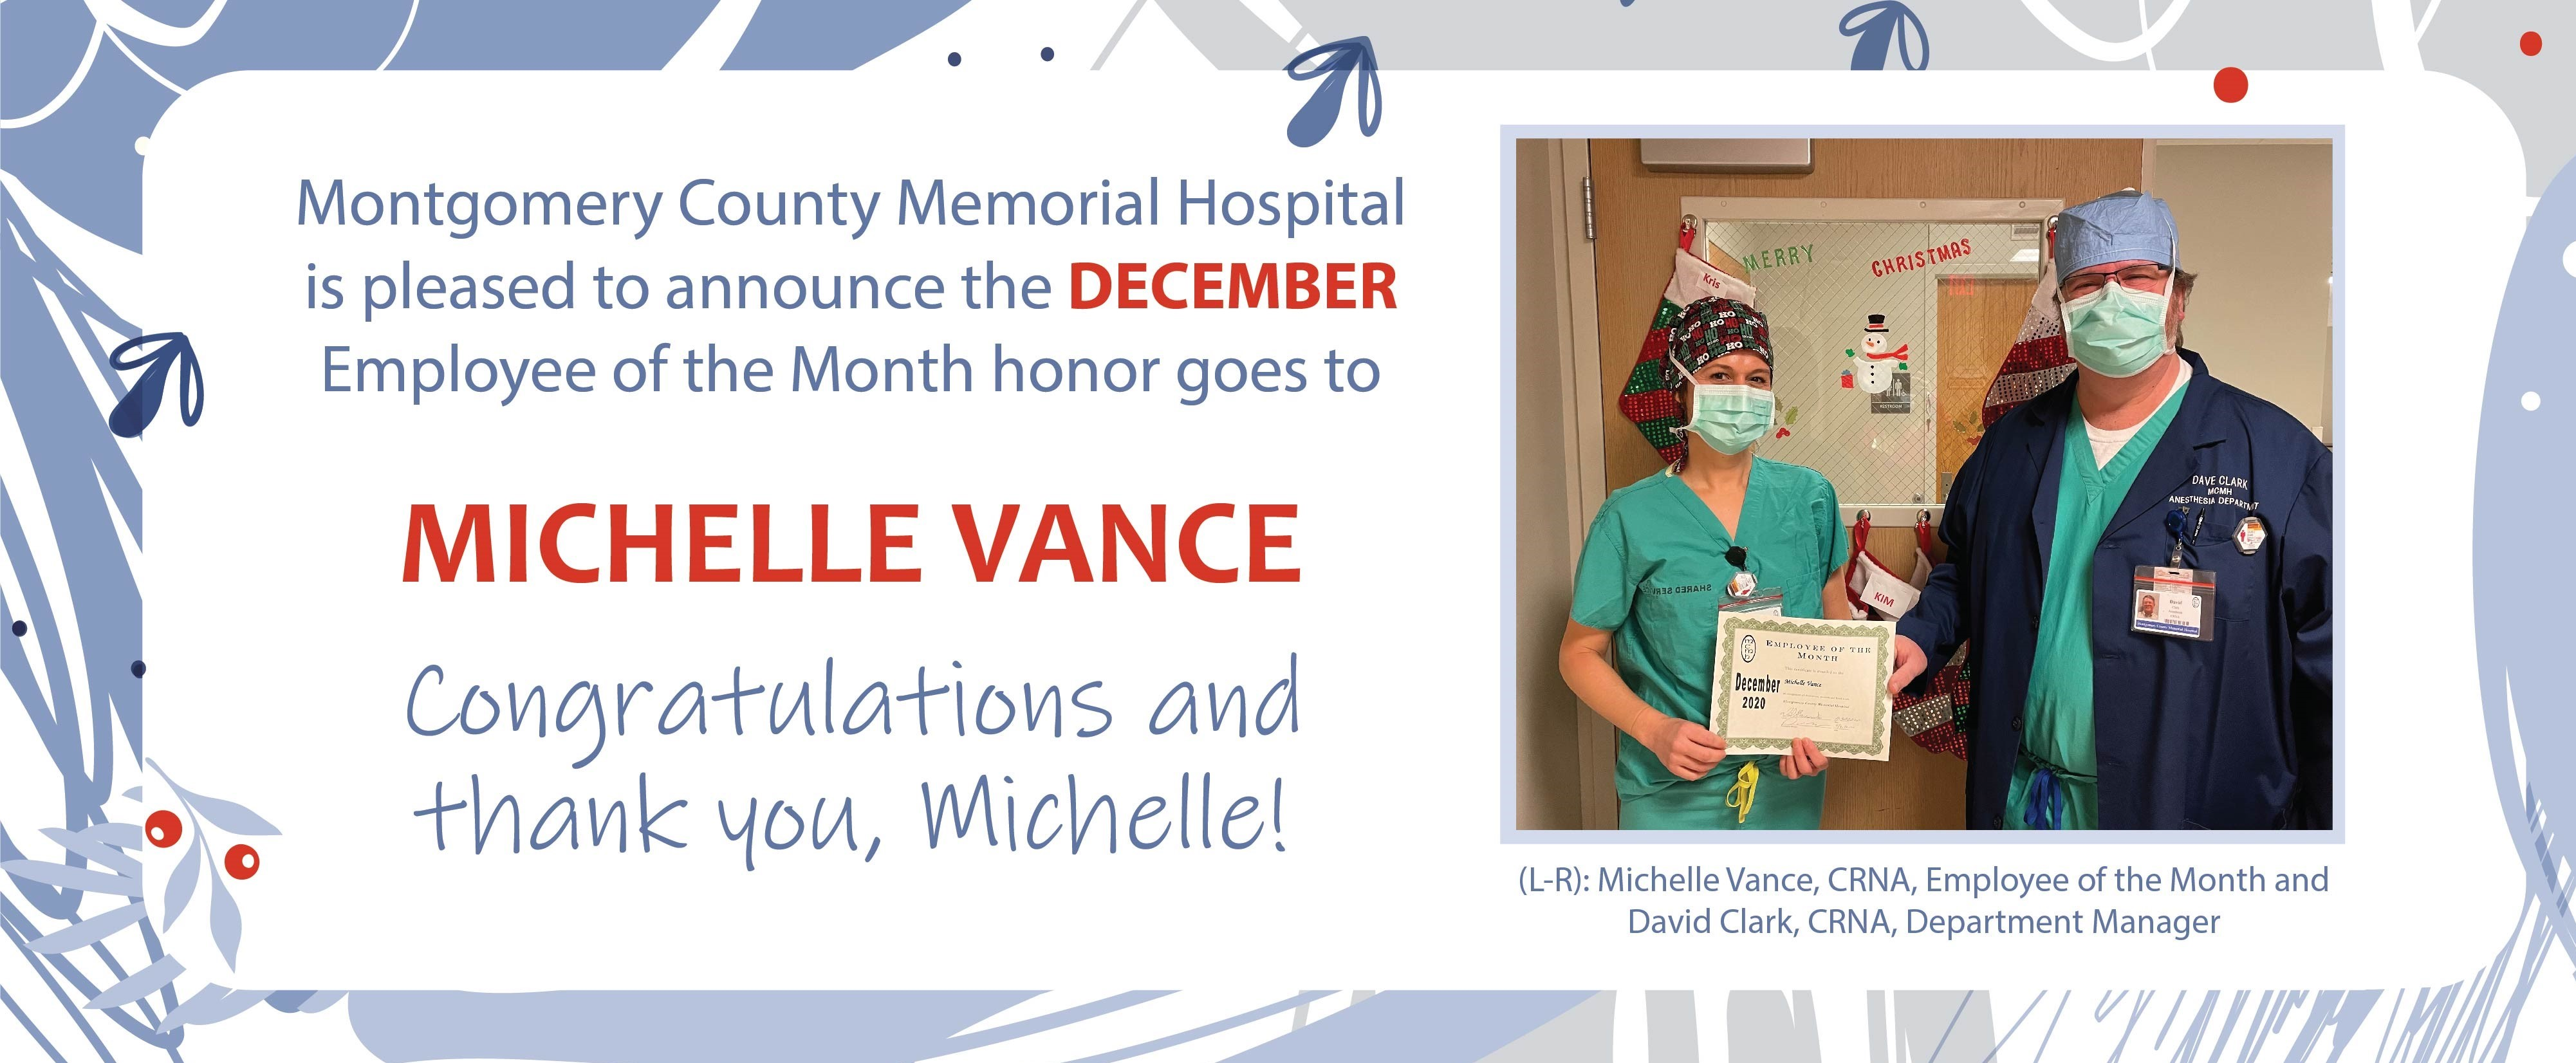 Michelle Vance: MCMH December Employee of the Month